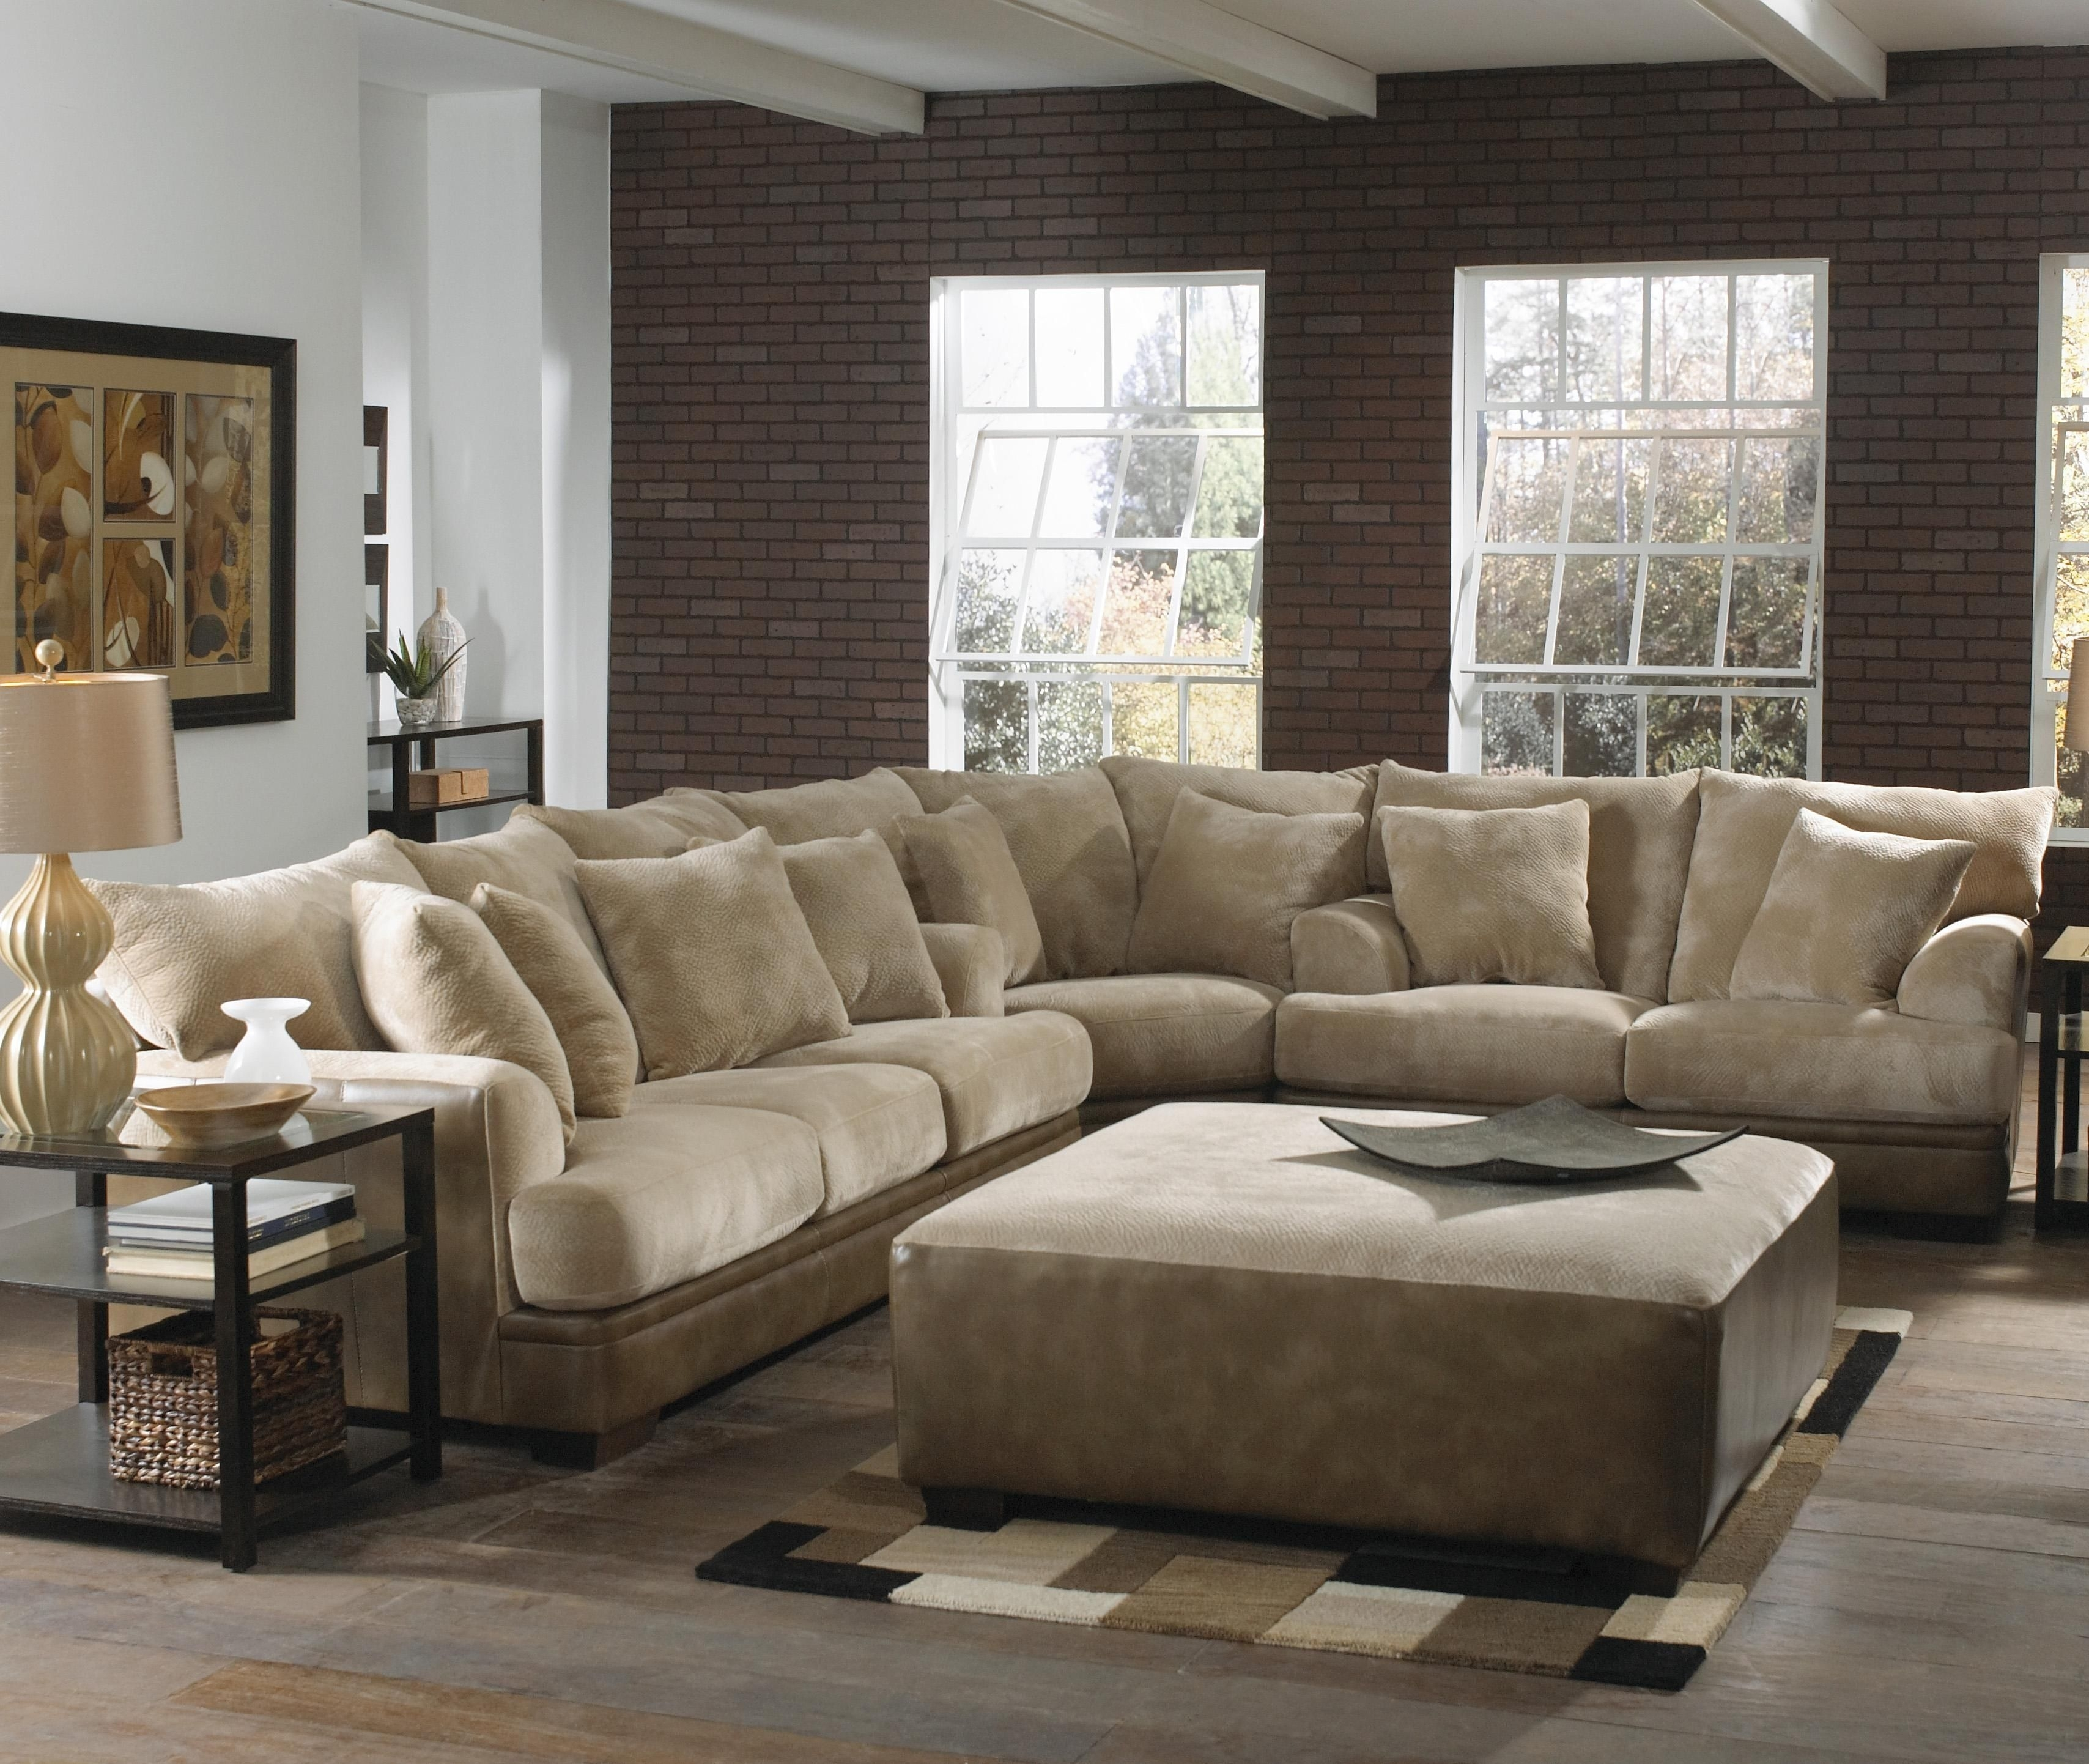 Large Tan Sectional Sofa | Http://ml2R | Pinterest | Tan With Regard To The Brick Sectional Sofas (View 10 of 10)